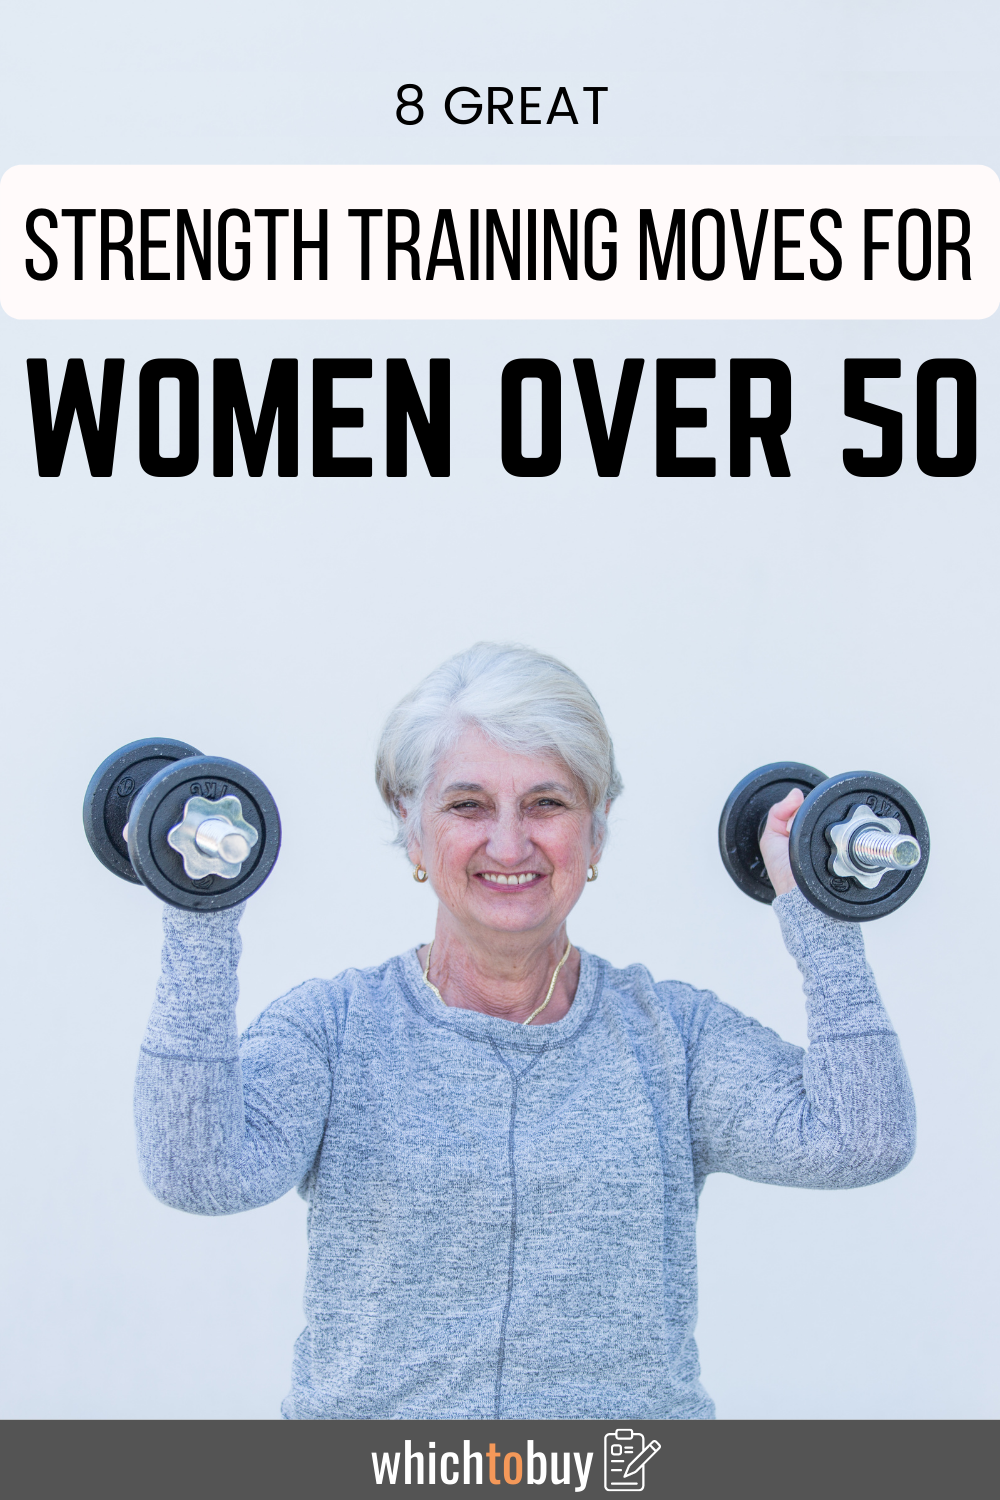 8 Great Strength Training Moves for Women Over 50